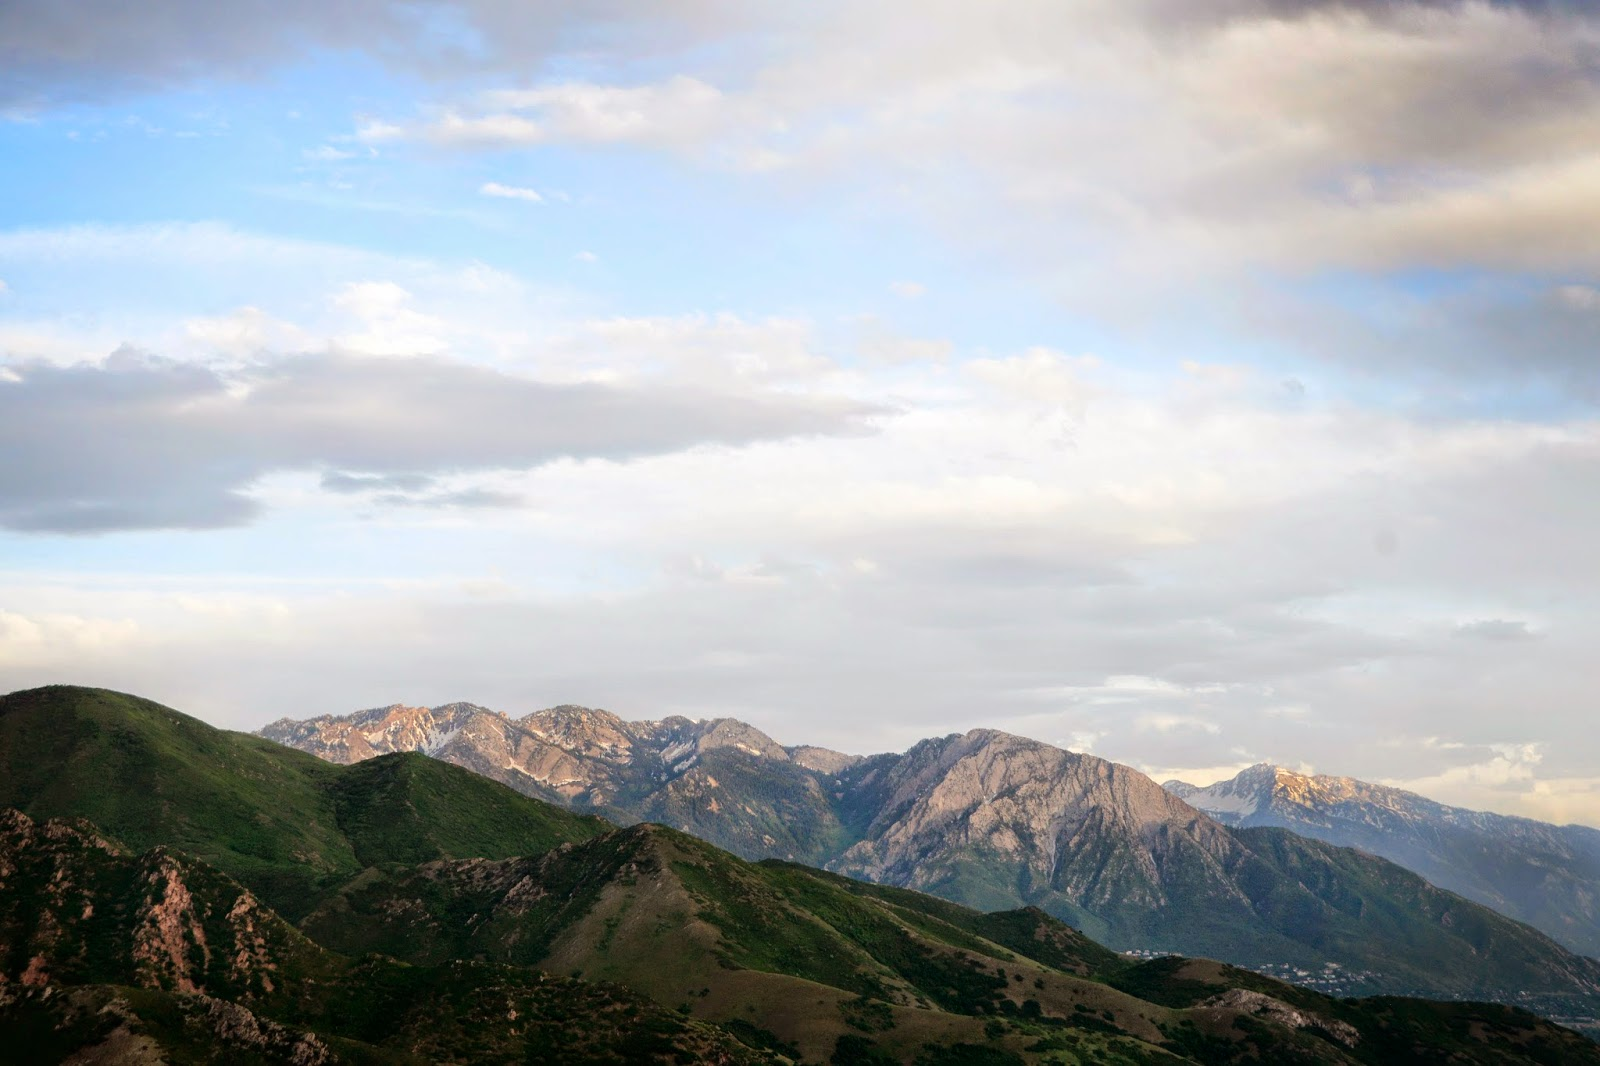 The Living Room hike, SLC | rachel haslam photography